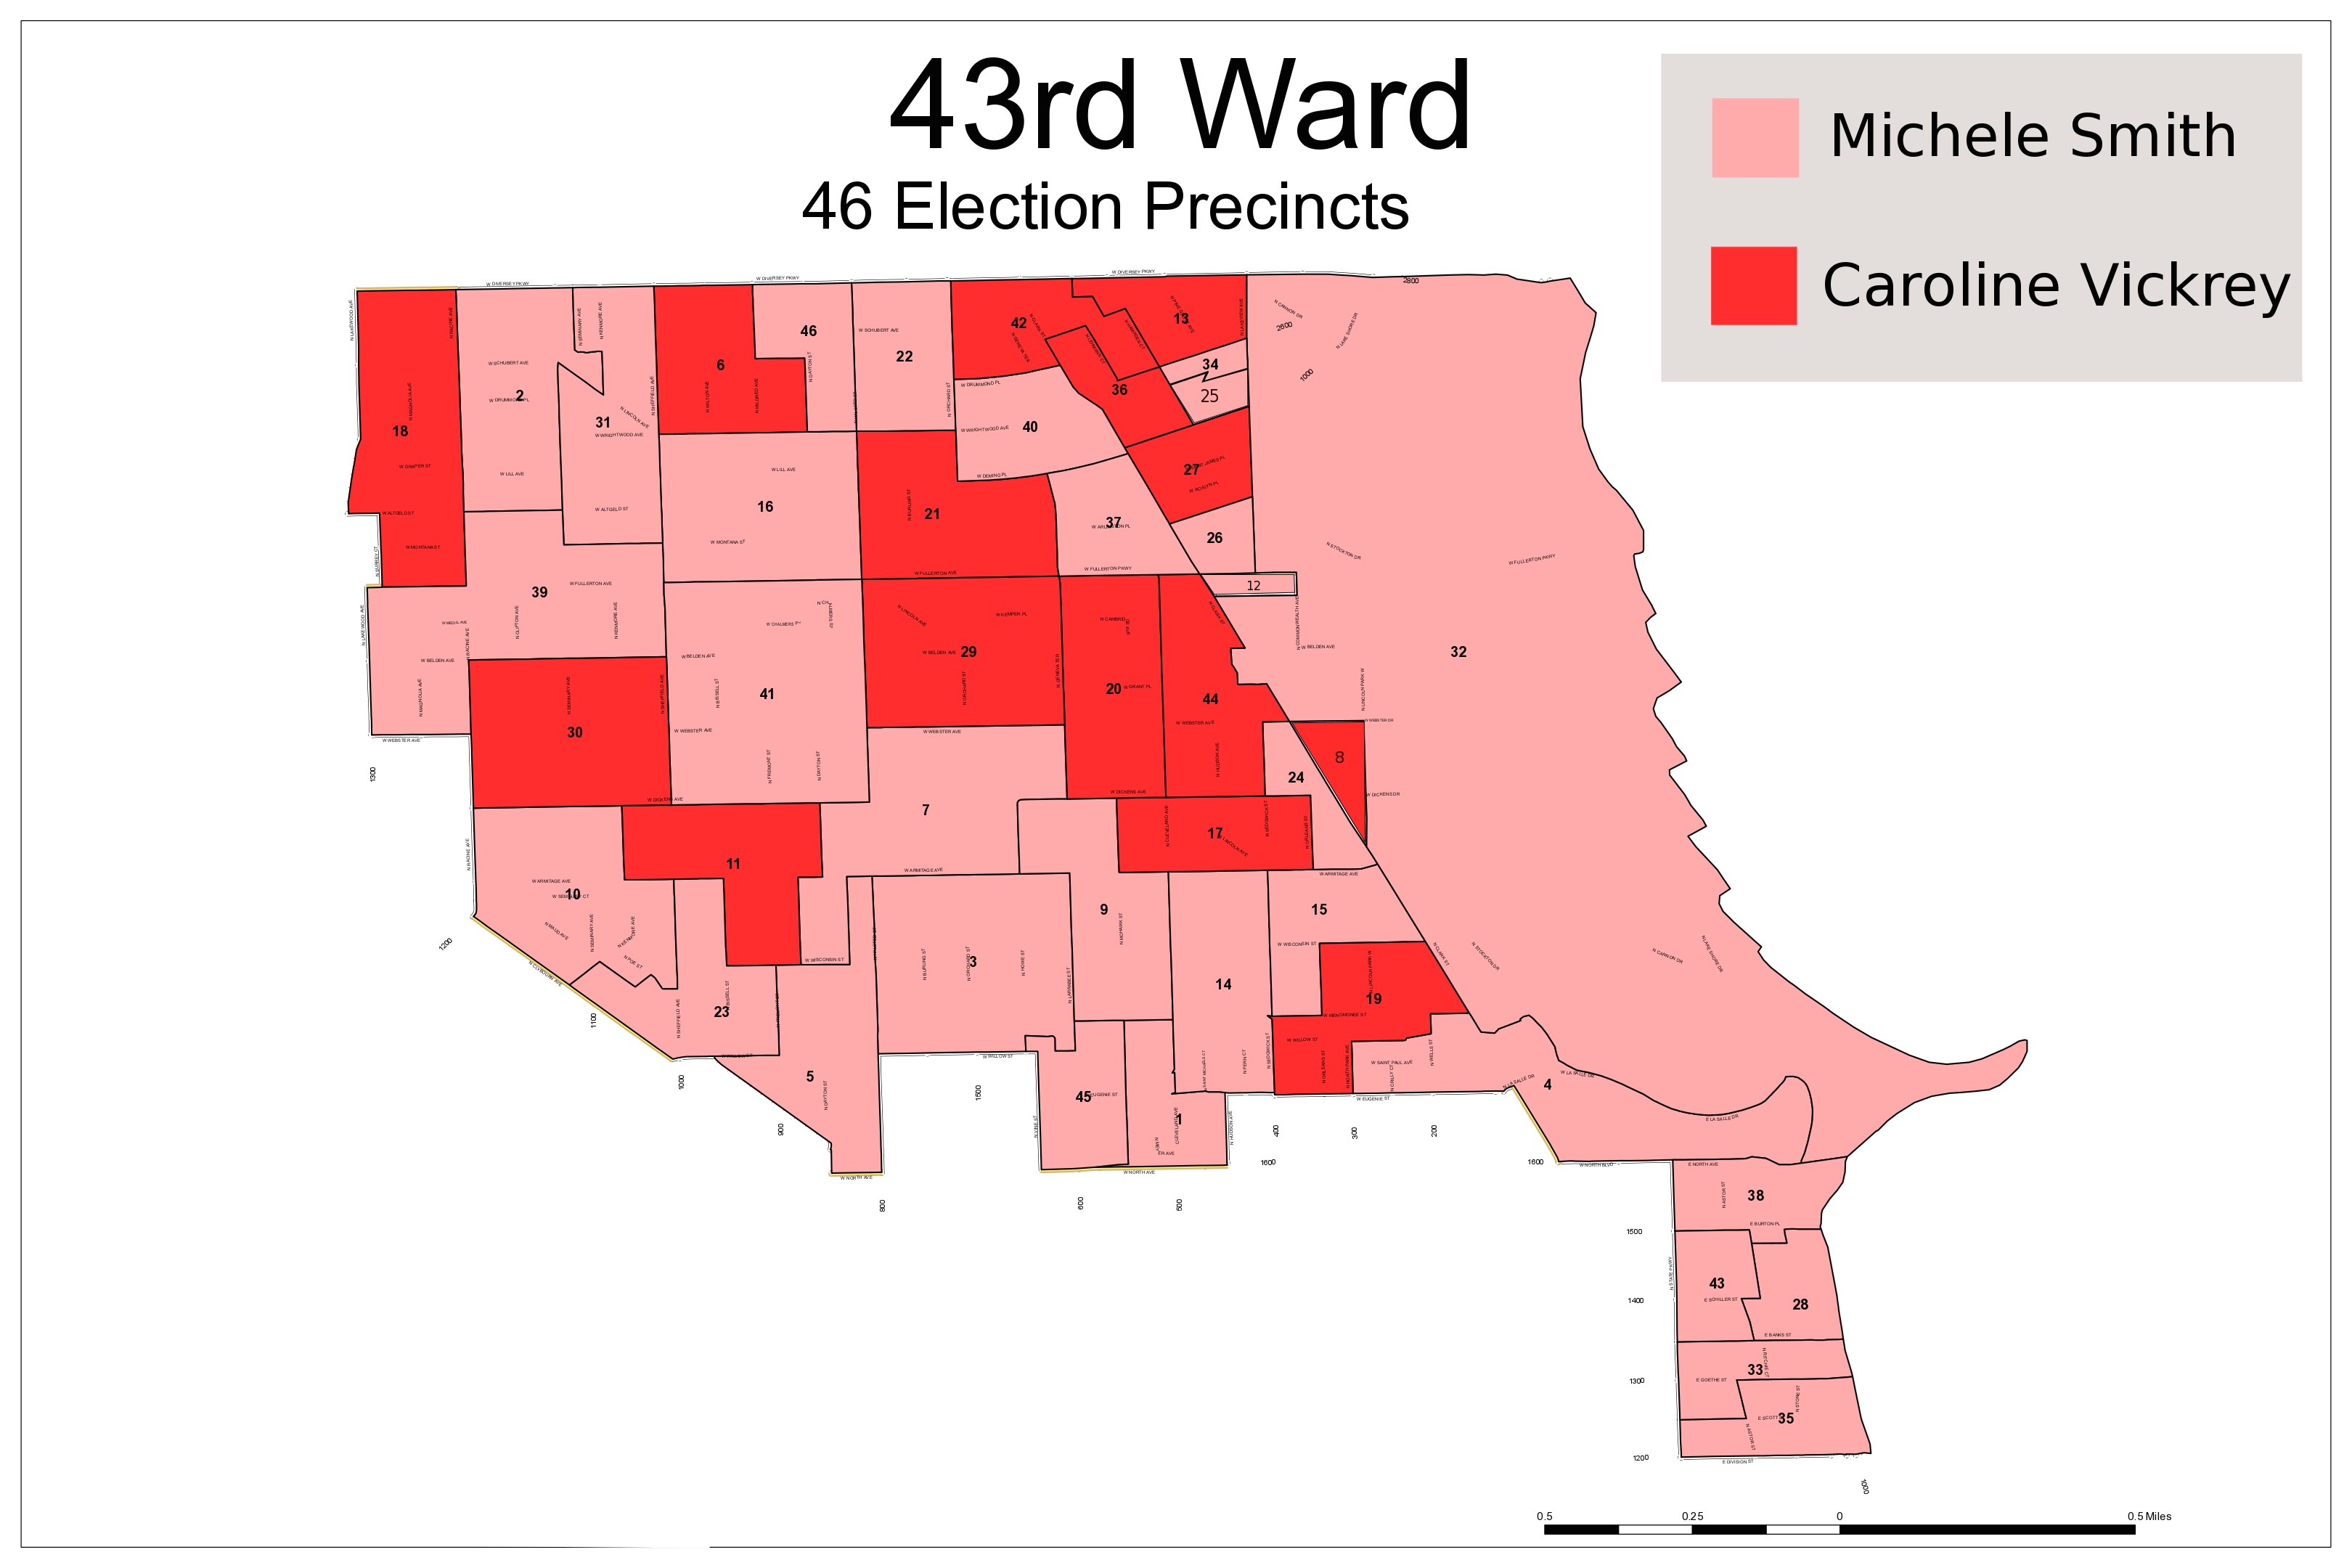 How Did Your Pocket of the 43rd Ward Vote A Deeper Look at the